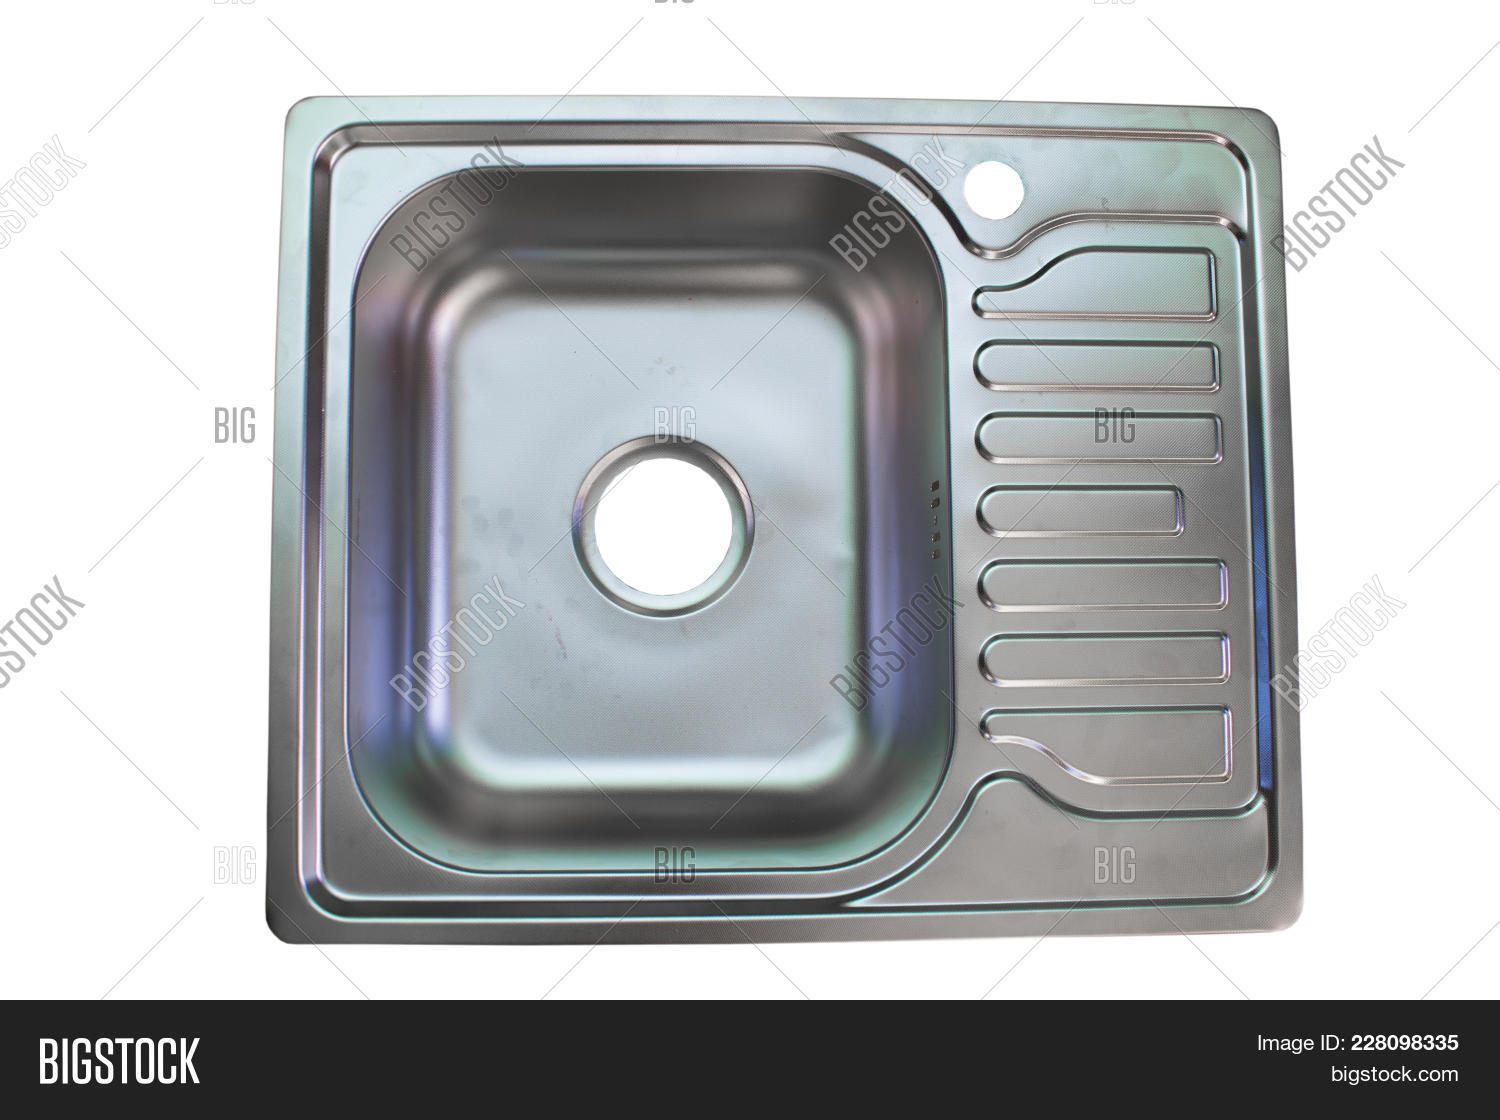 Top View Of A Kitchen Sink On White Background